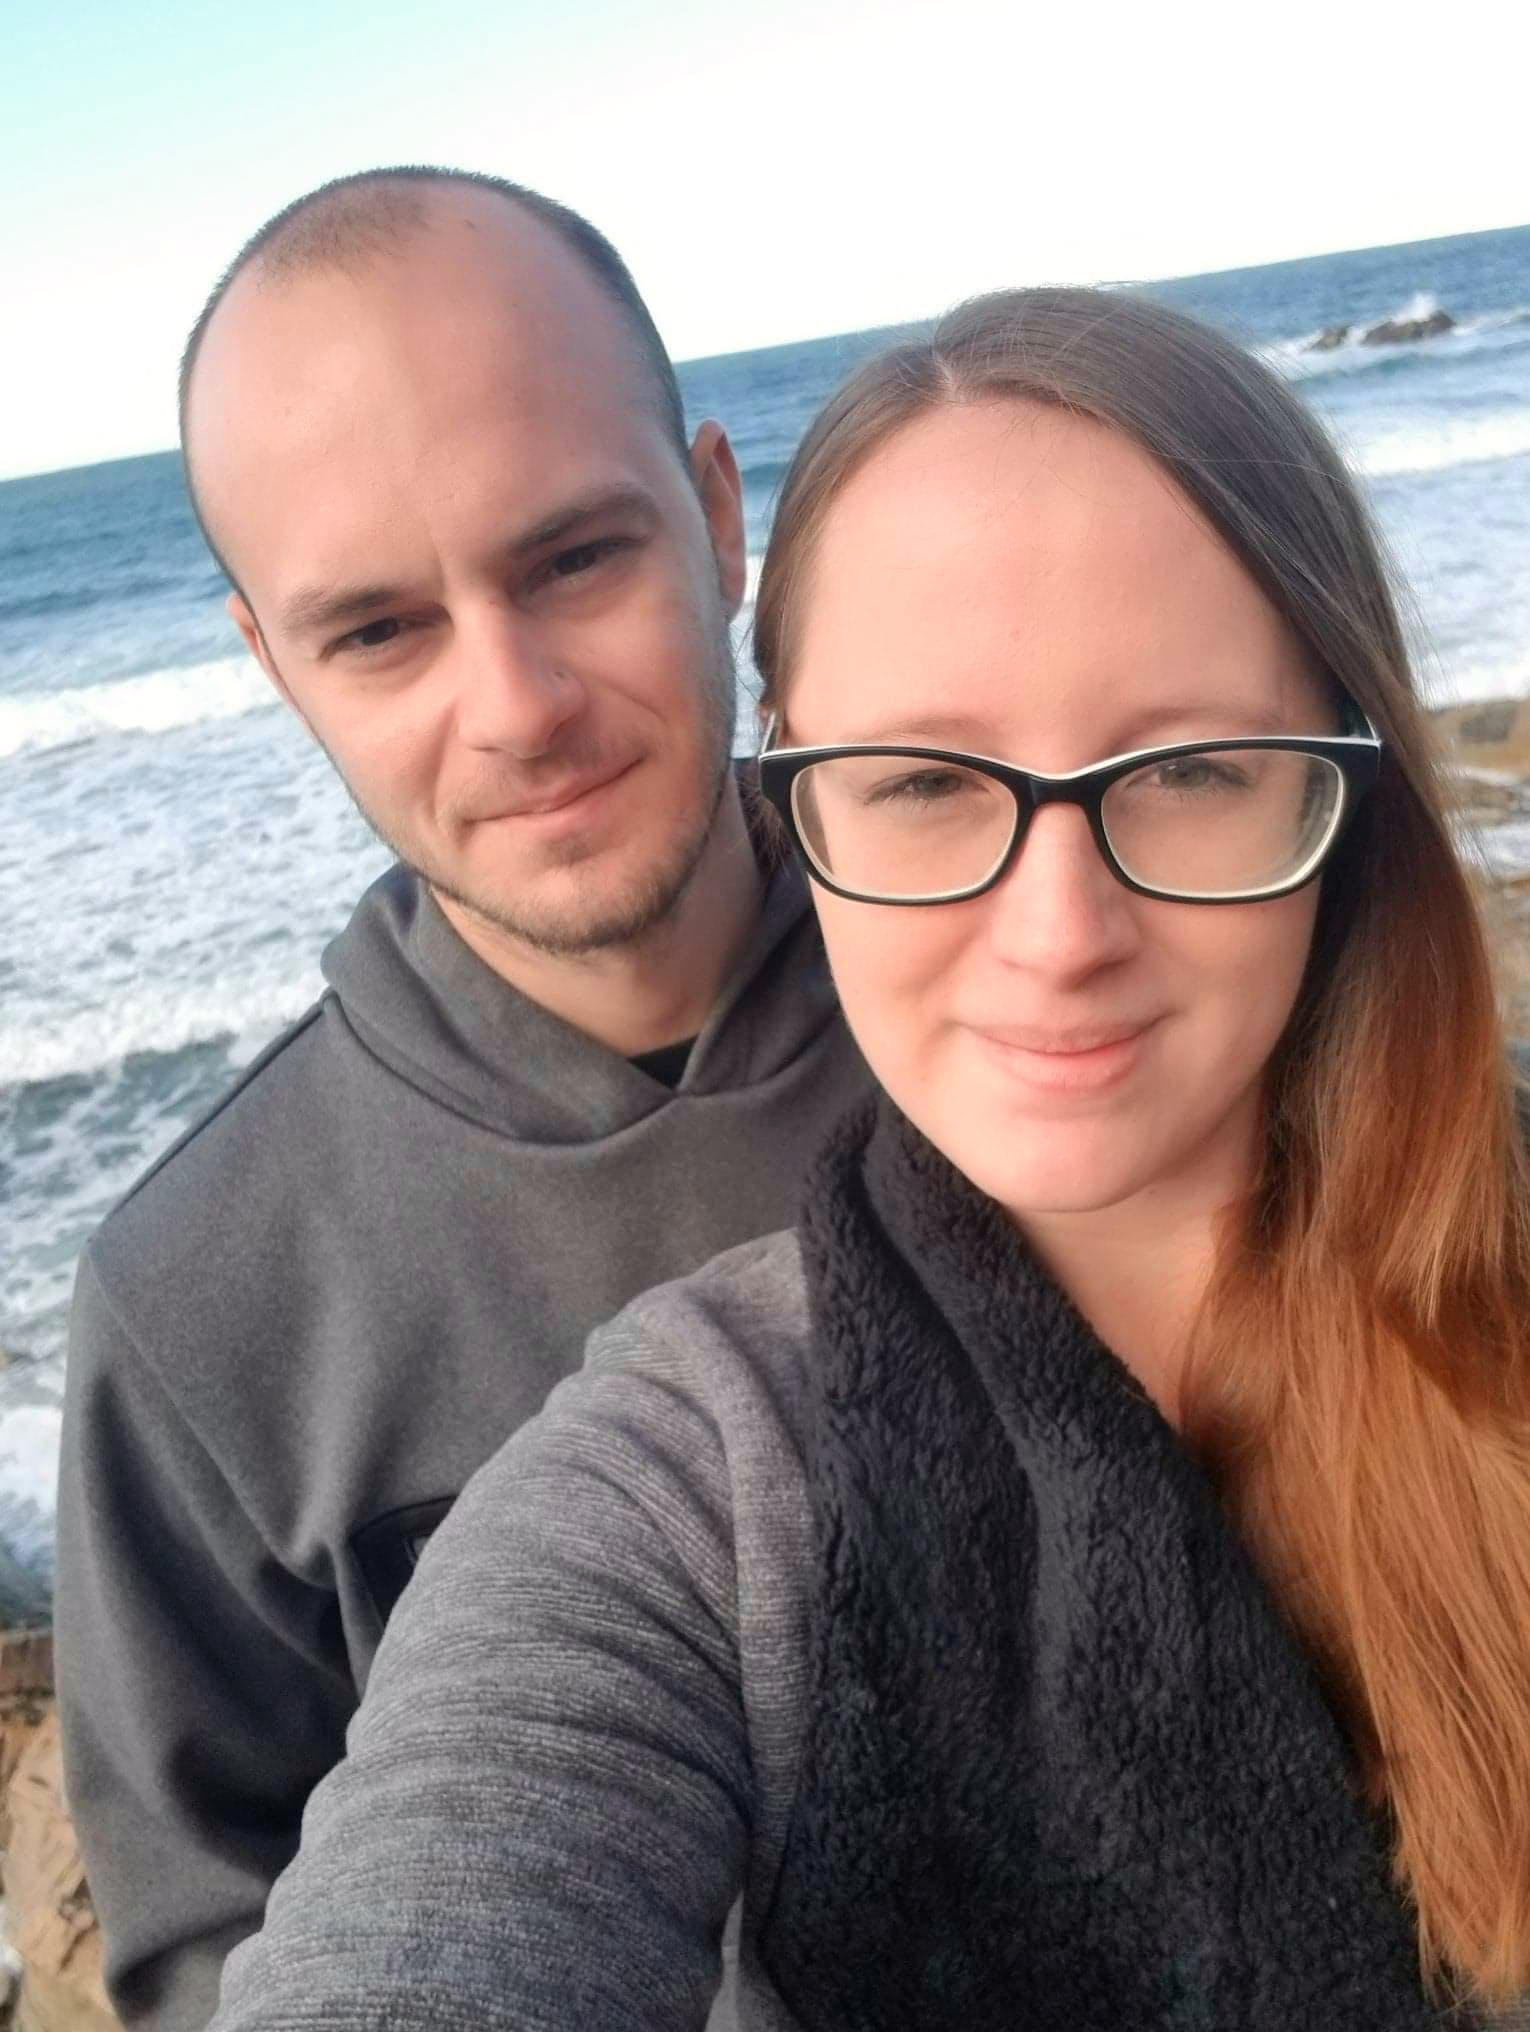 Kyle Rice and Jessica Baker are still recovering from serious injuries they suffered in a head-on crash in Dartmouth on Feb. 6.